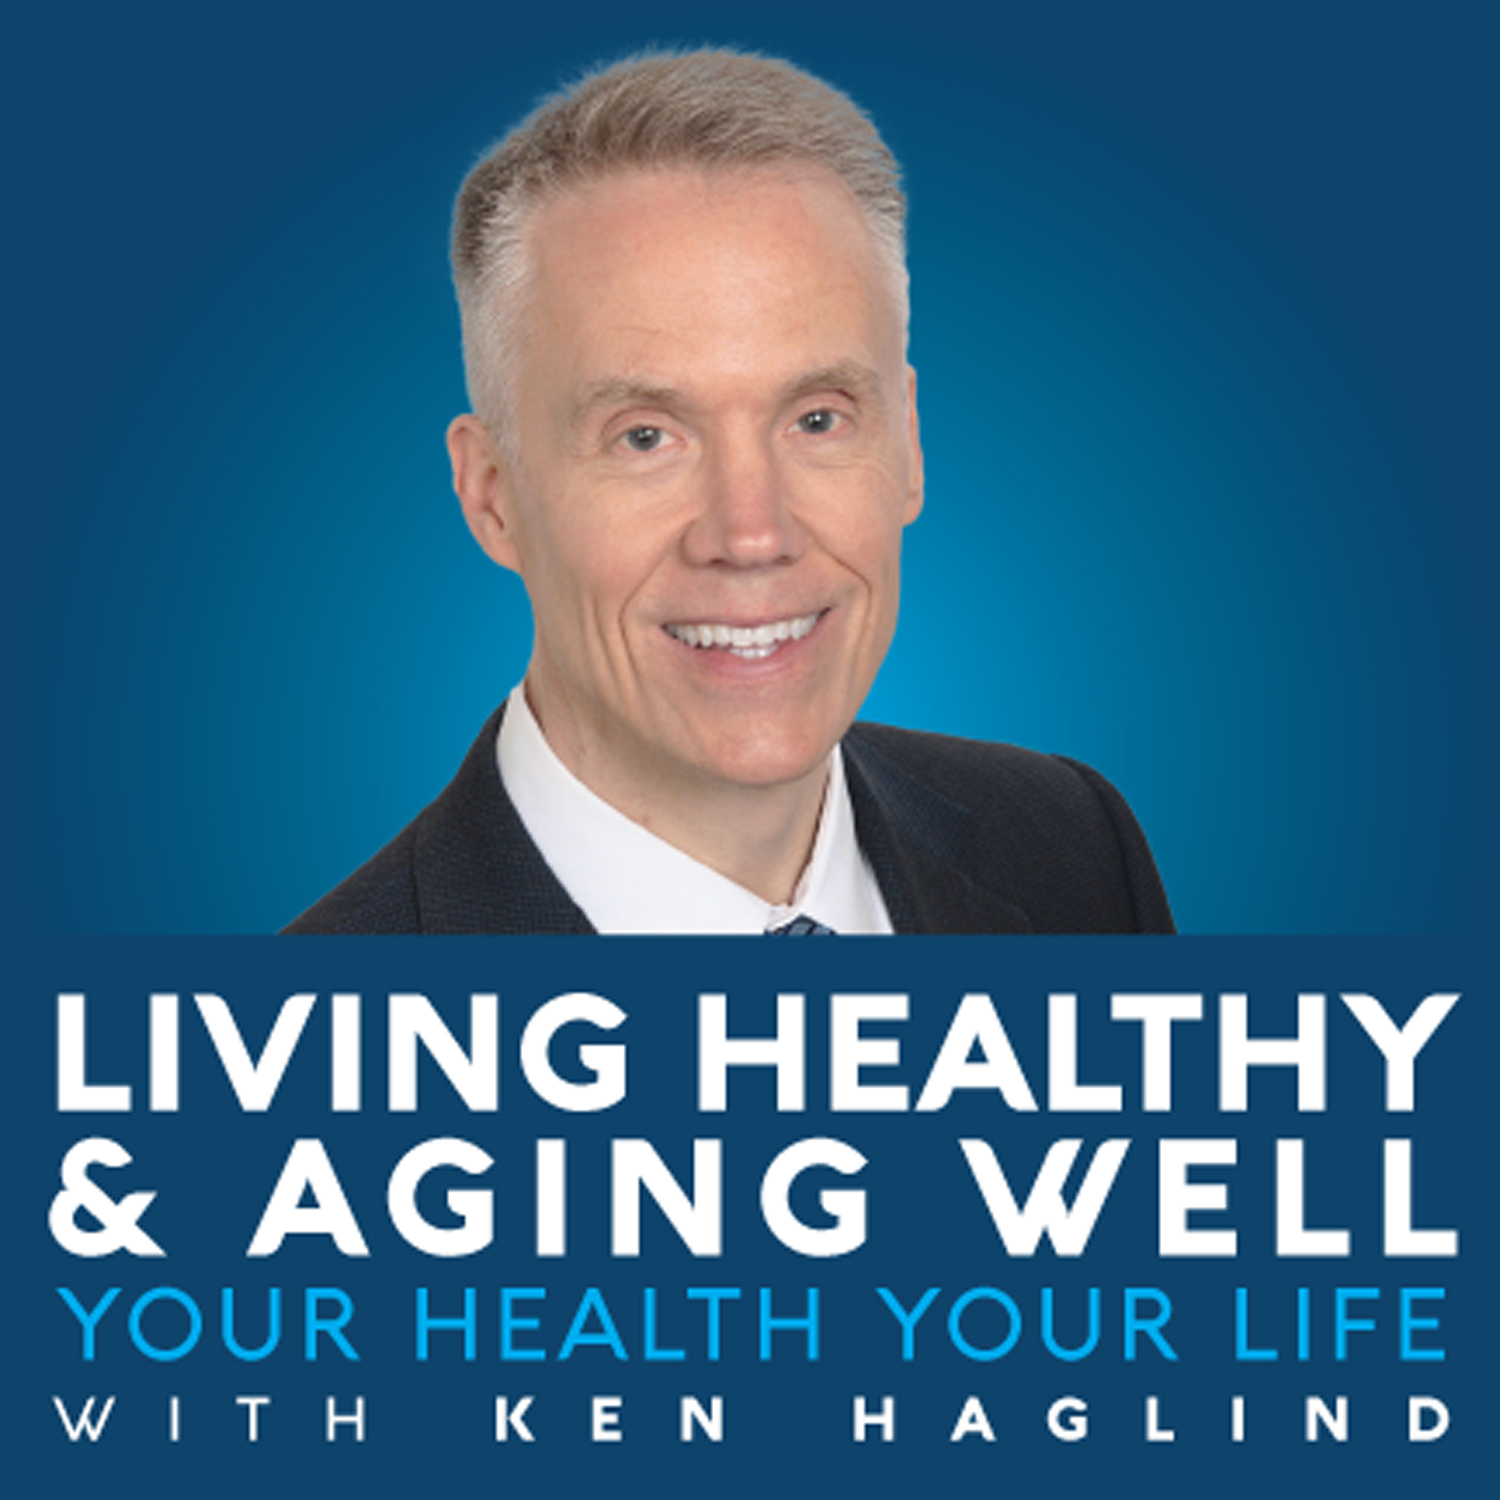 Living Healthy and Aging Well - AM950 The Progressive Voice of Minnesota